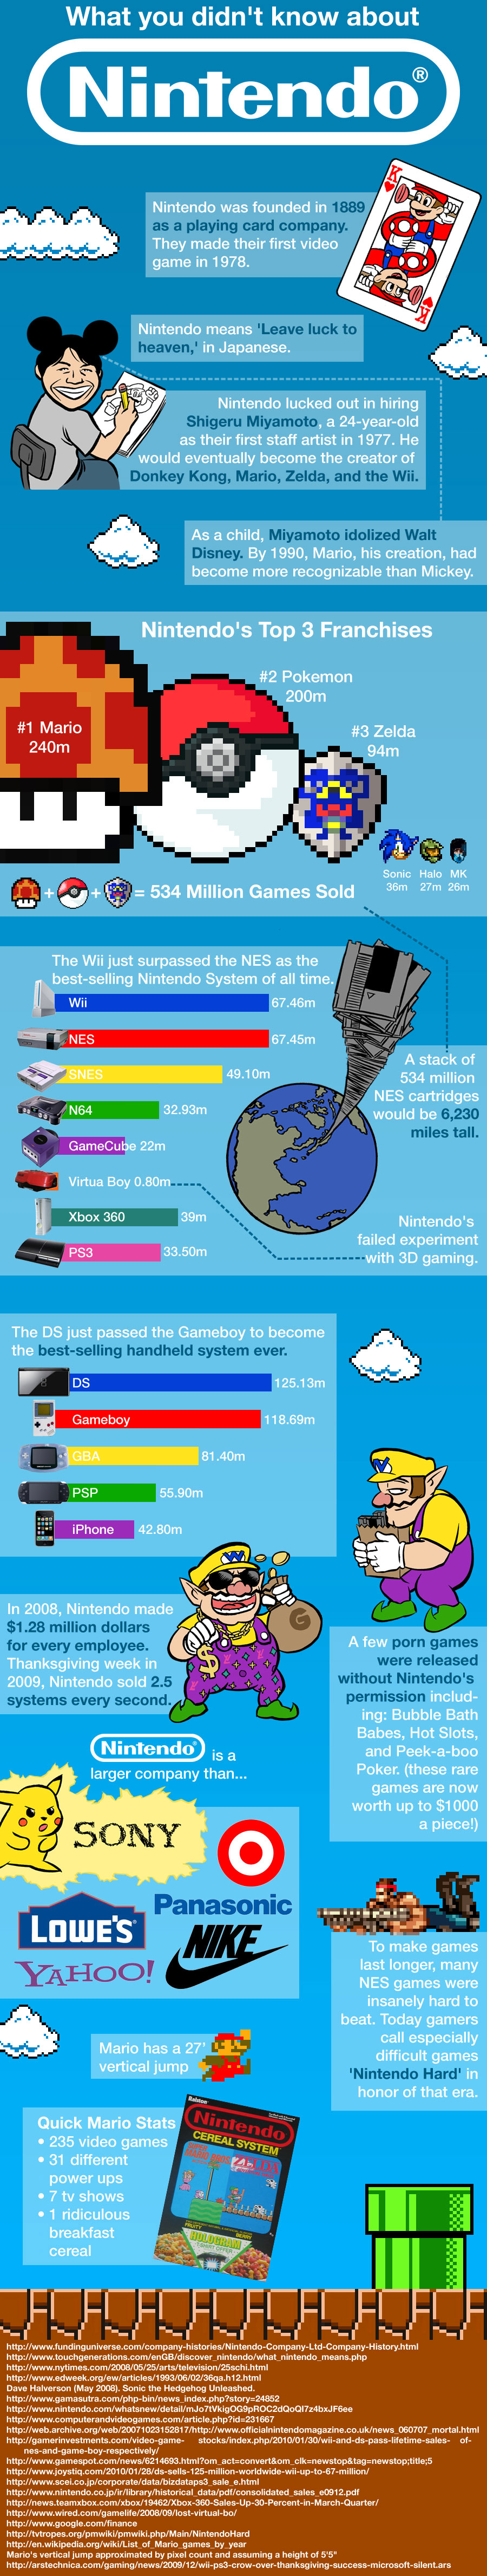 What You Didn't Know About Nintendo Infographic